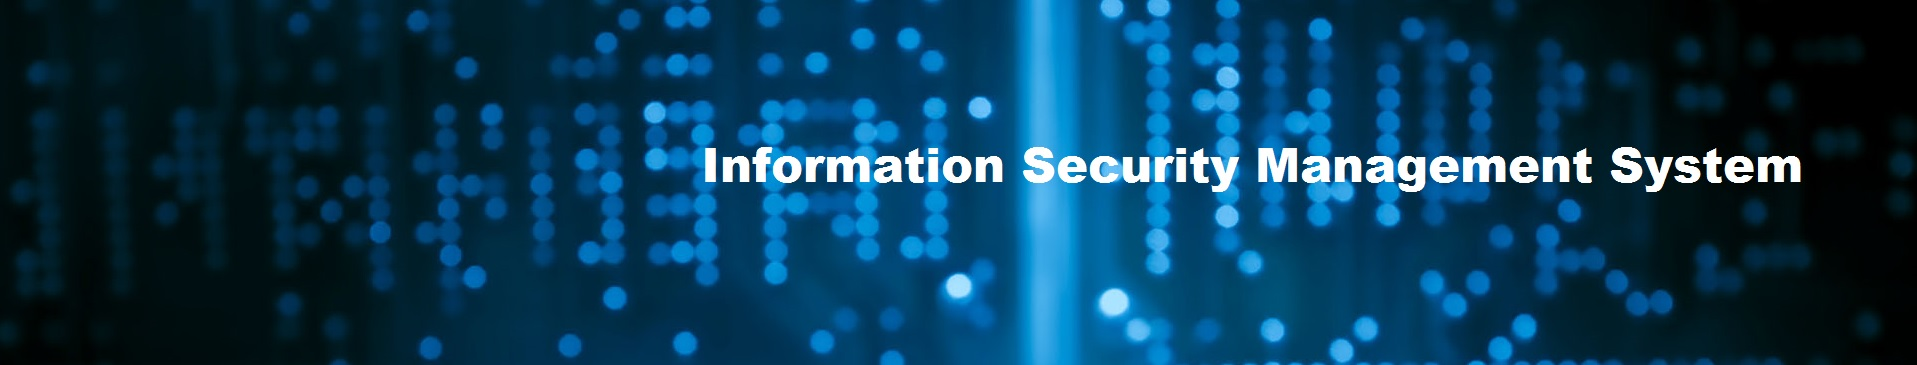 iso 27001 certification in kolkata, iso 27001 certification providers in kolkata, iso 27001 certification kolkata, Information Security Management Services in kolkata, iso certification provider in kolkata, iso 27000 certification kolkata, ISMS, Information Security Management System, ISO 27000, ISO 27001:2013